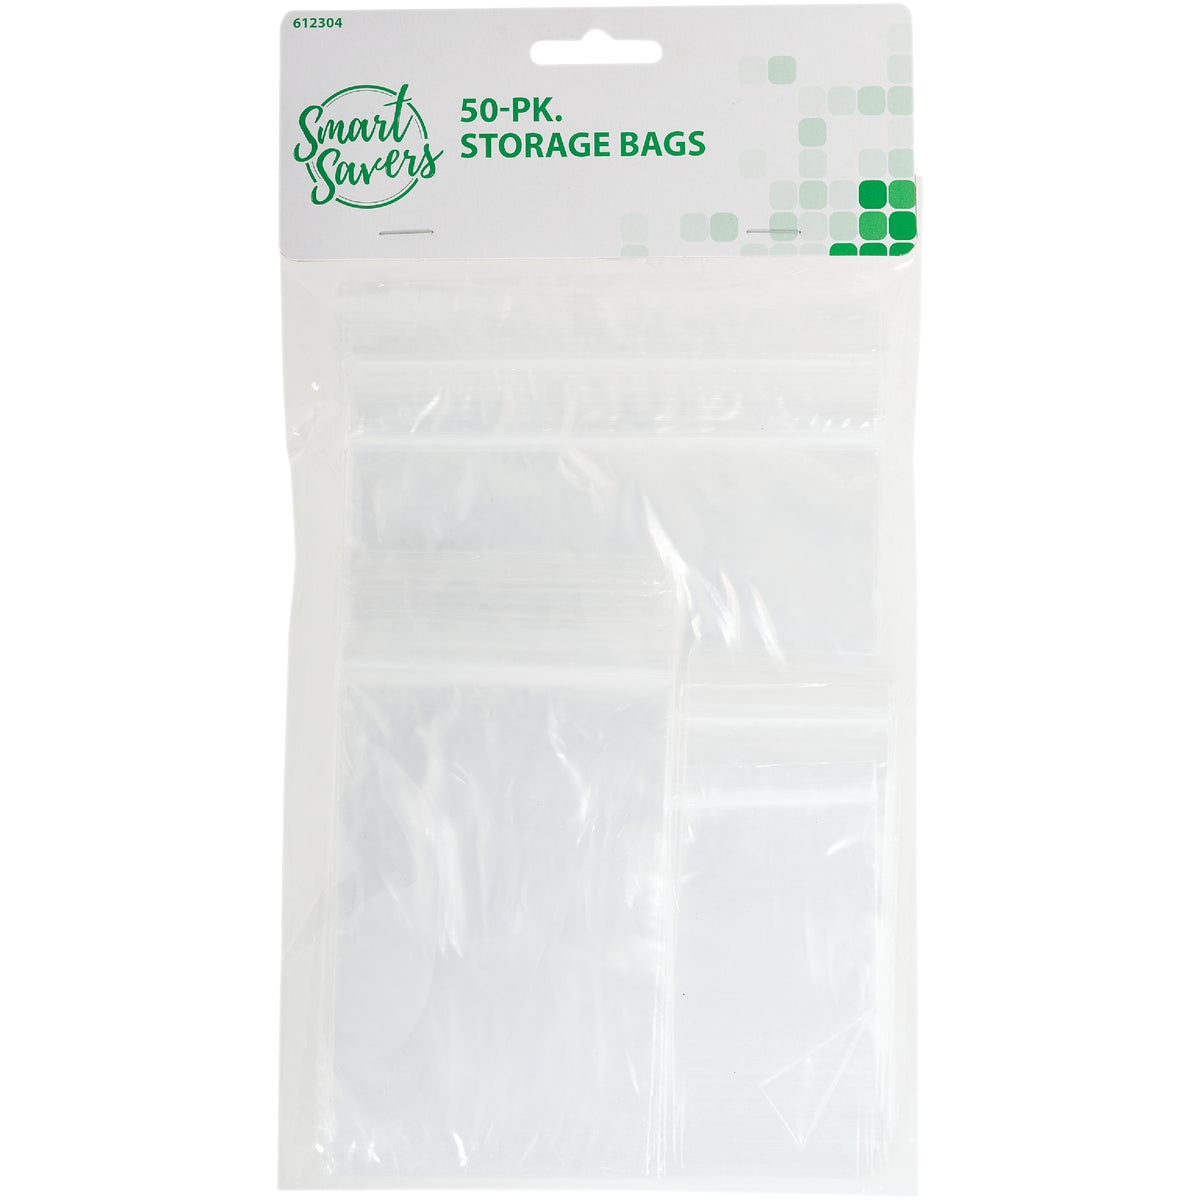 Do it Best Imports 50PC STORAGE BAGS HJ035